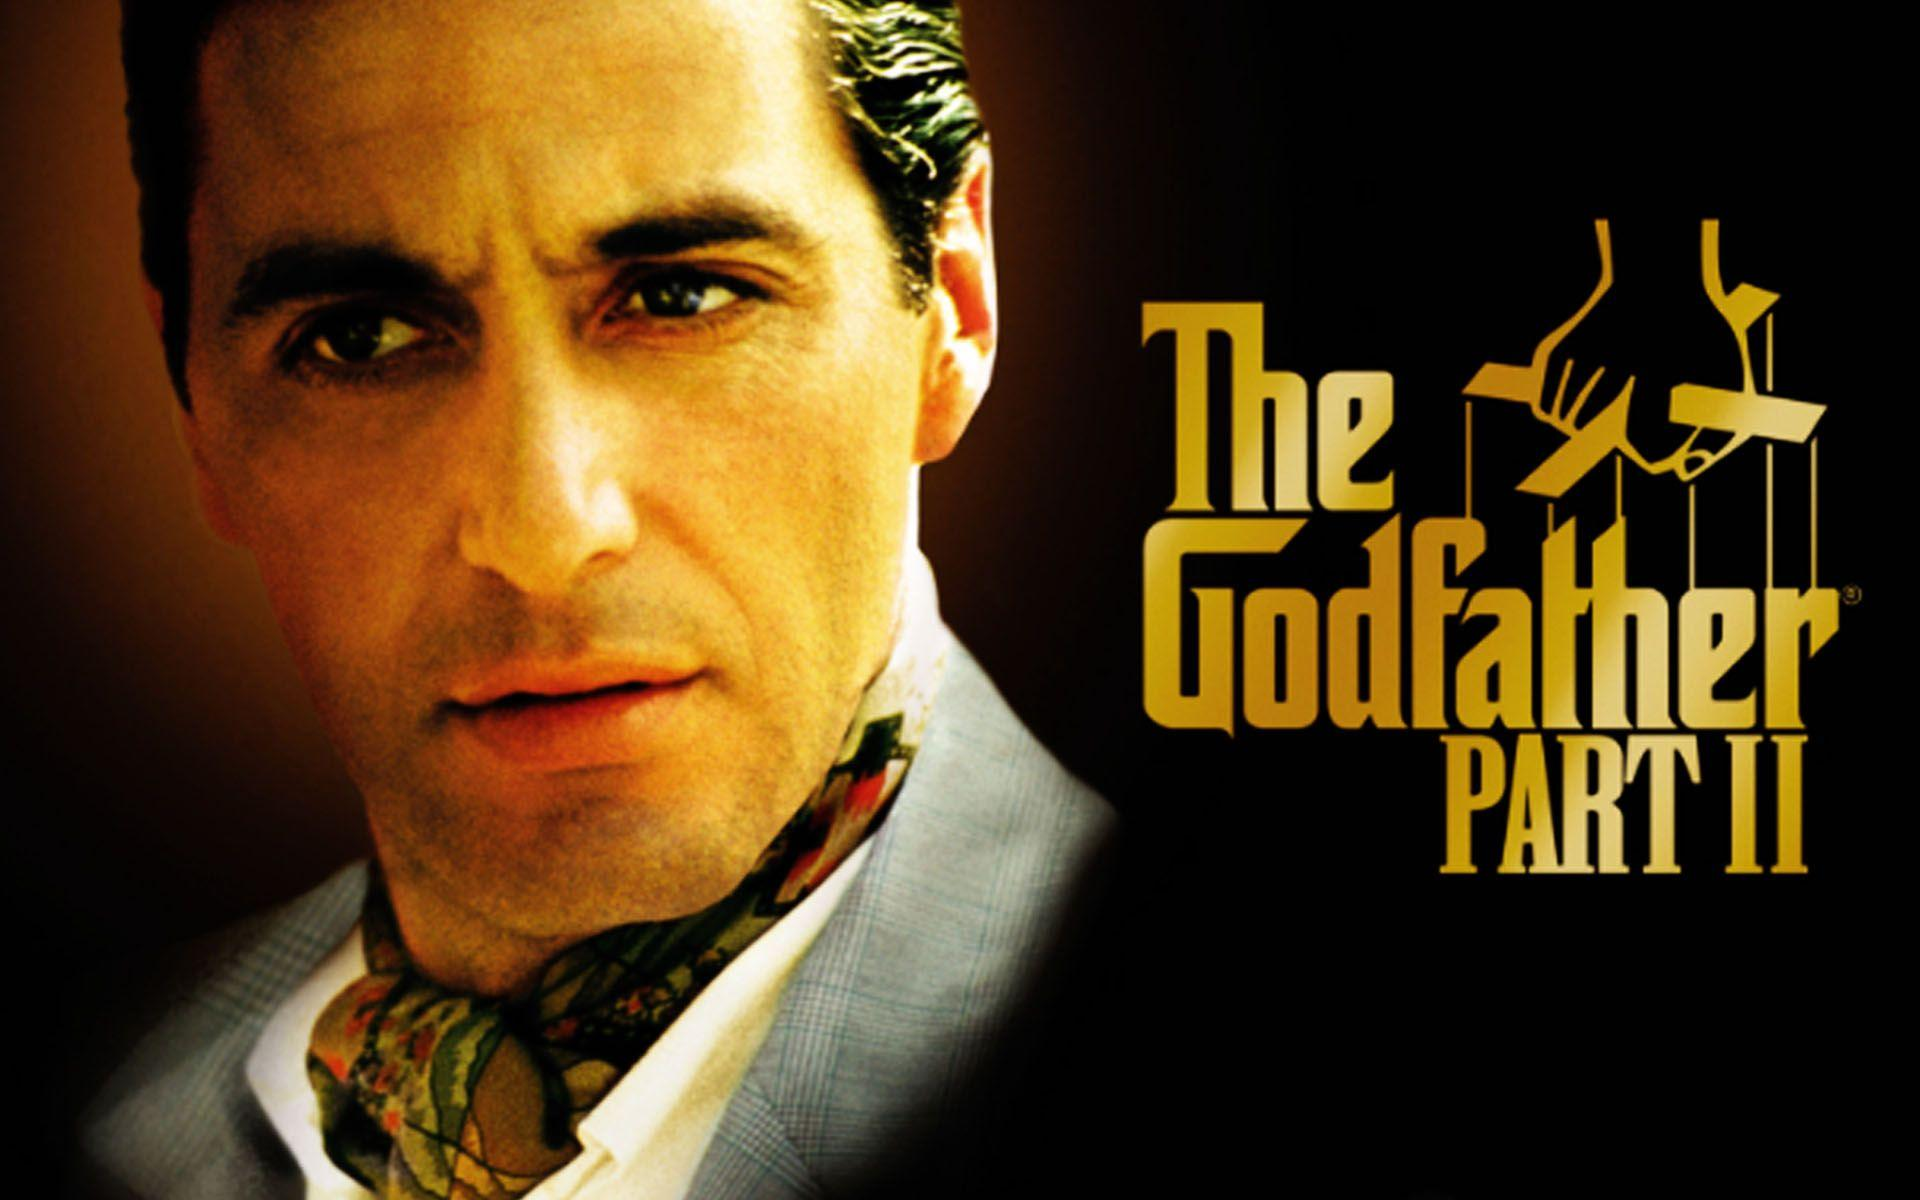 wallpapers desktop the godfather part ii x kB